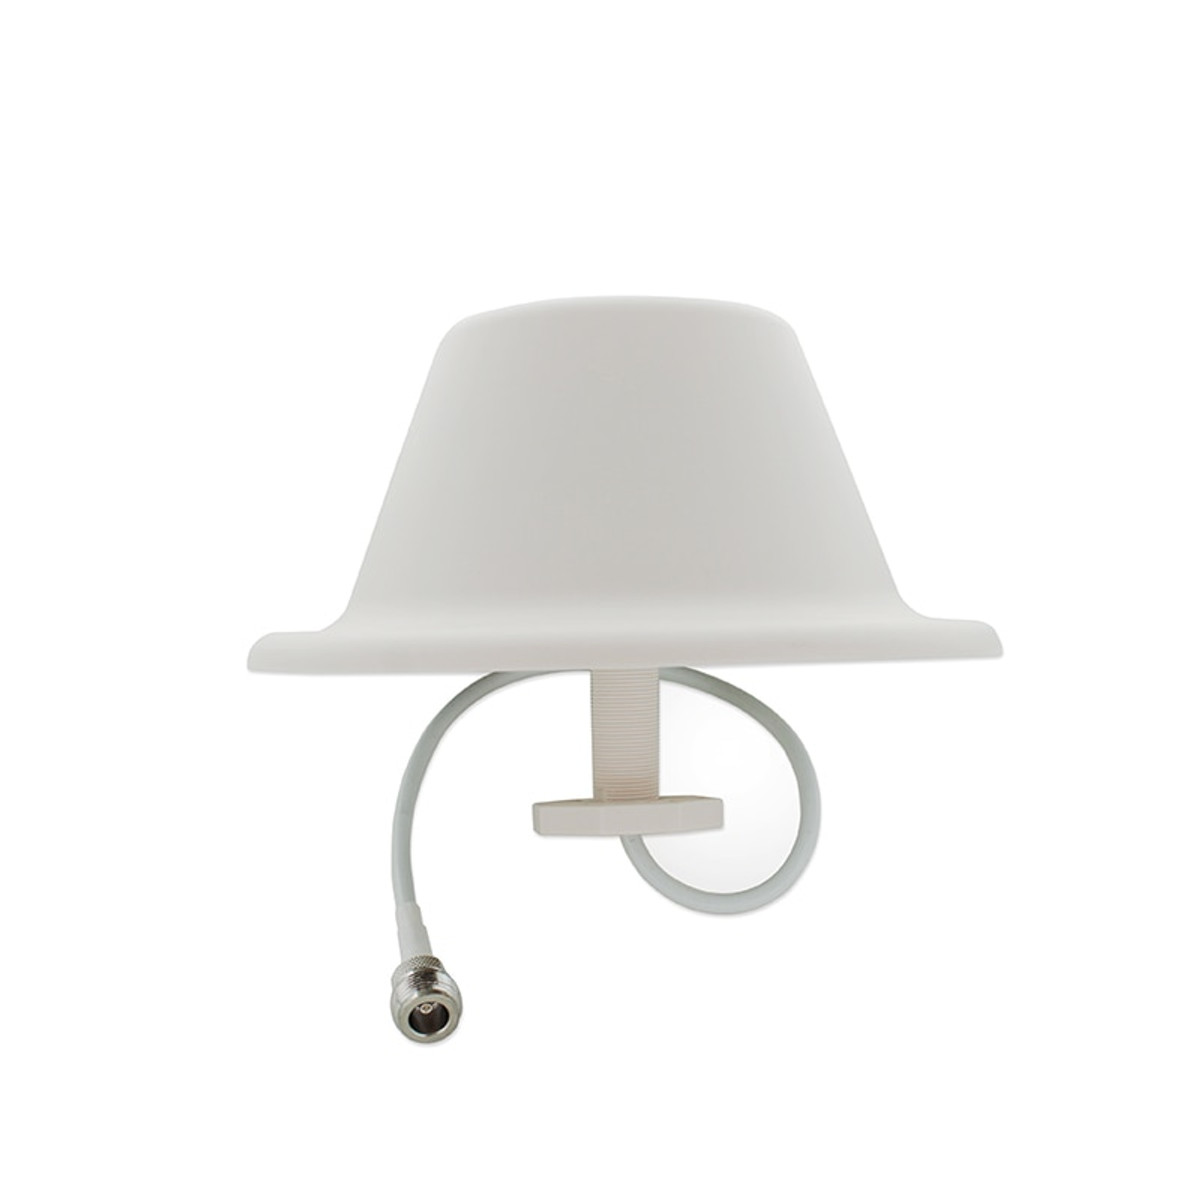 Wilson Electronics 4G Dome Ceiling Antenna, 50 Ohm - 304412